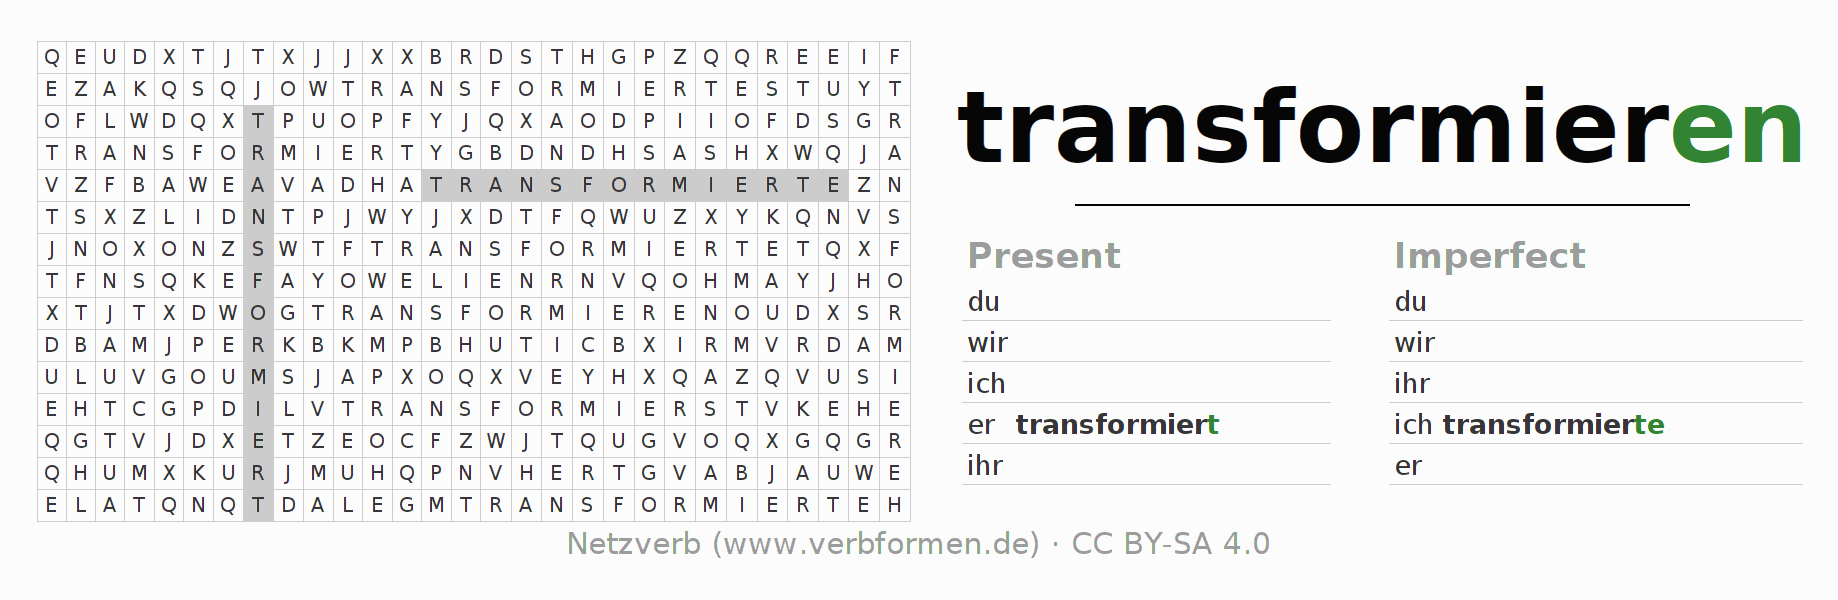 Word search puzzle for the conjugation of the verb transformieren